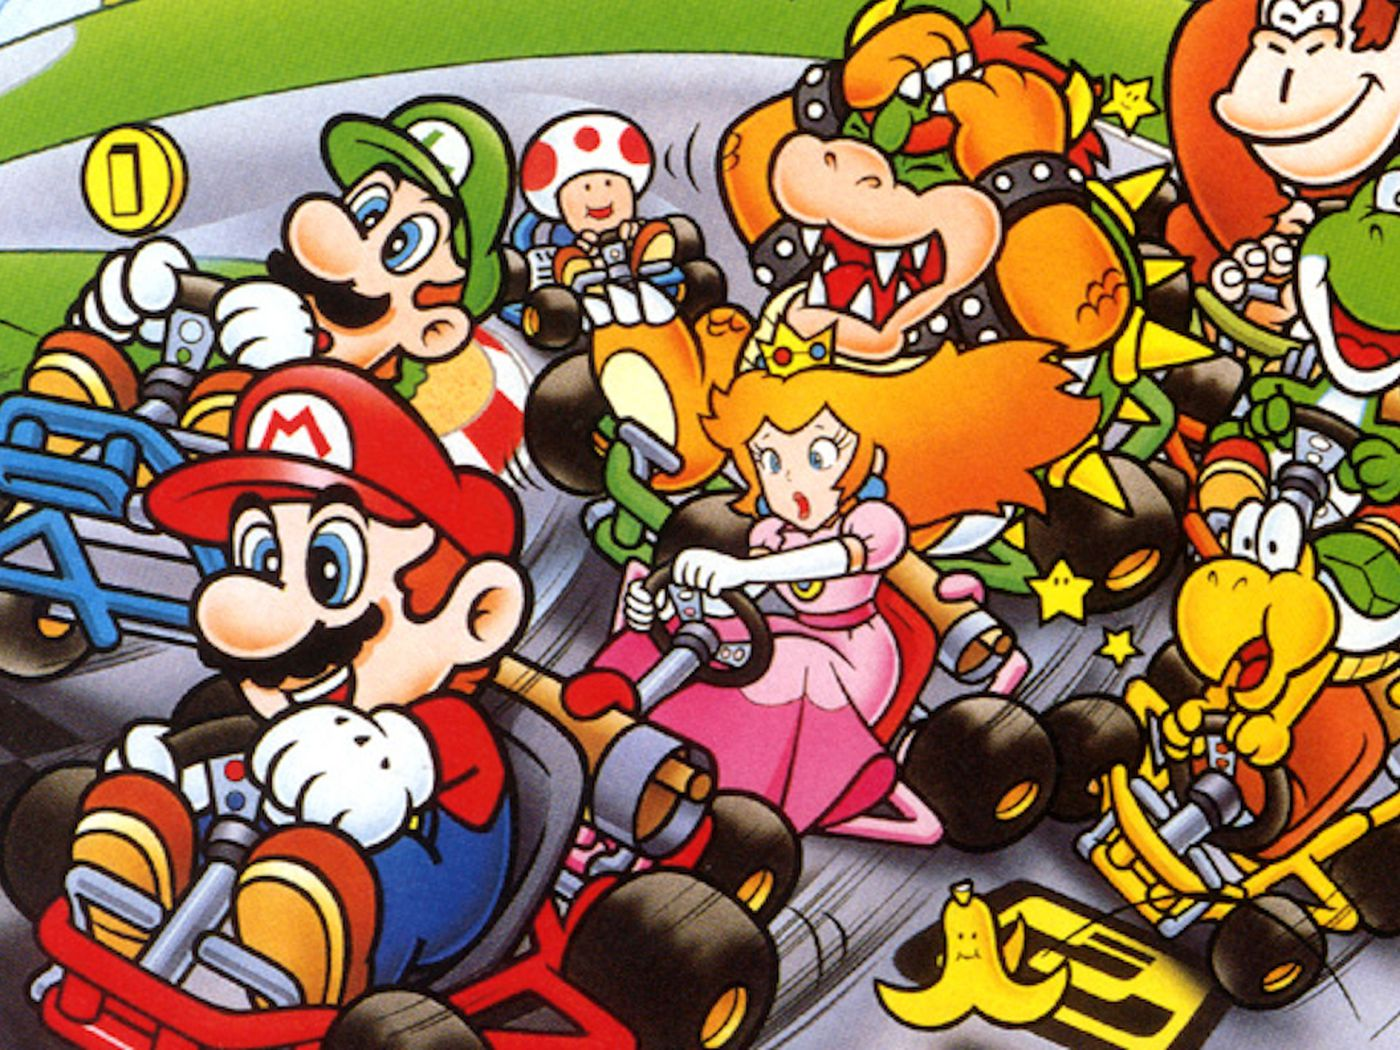 The people who still compete in Super Mario Kart, 25 years